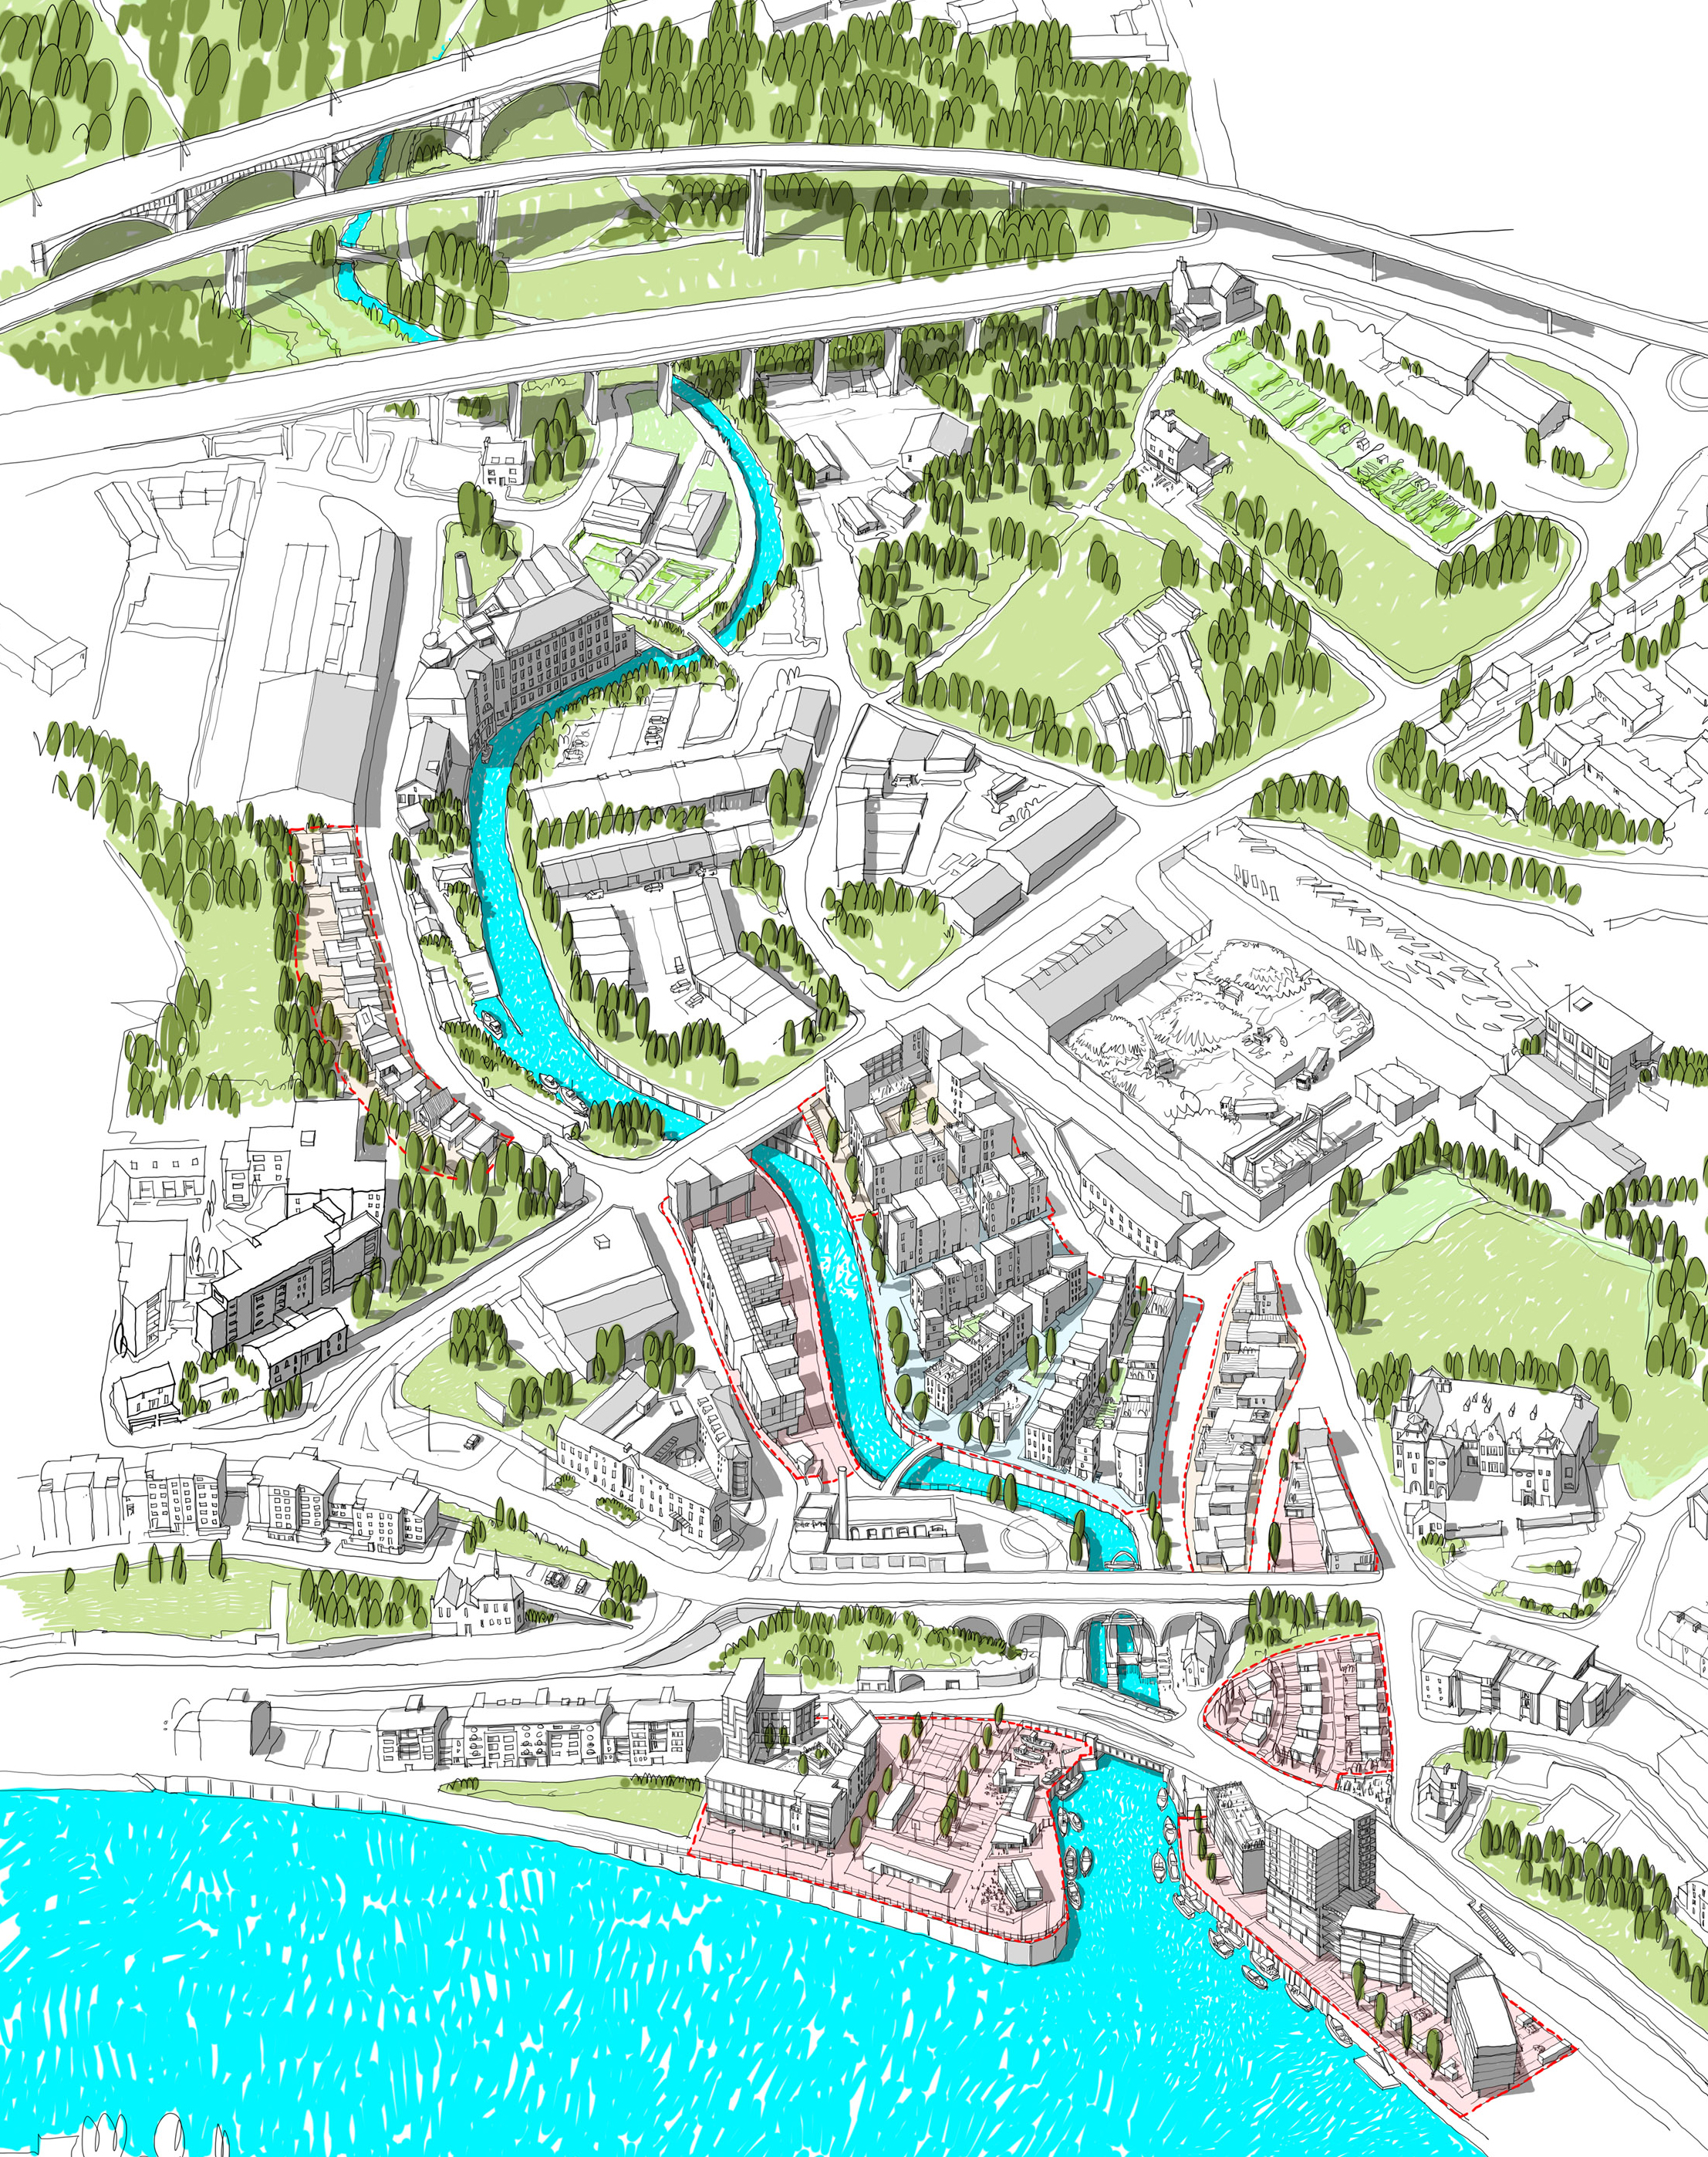 Lower Ouseburn Valley Masterplan URBED